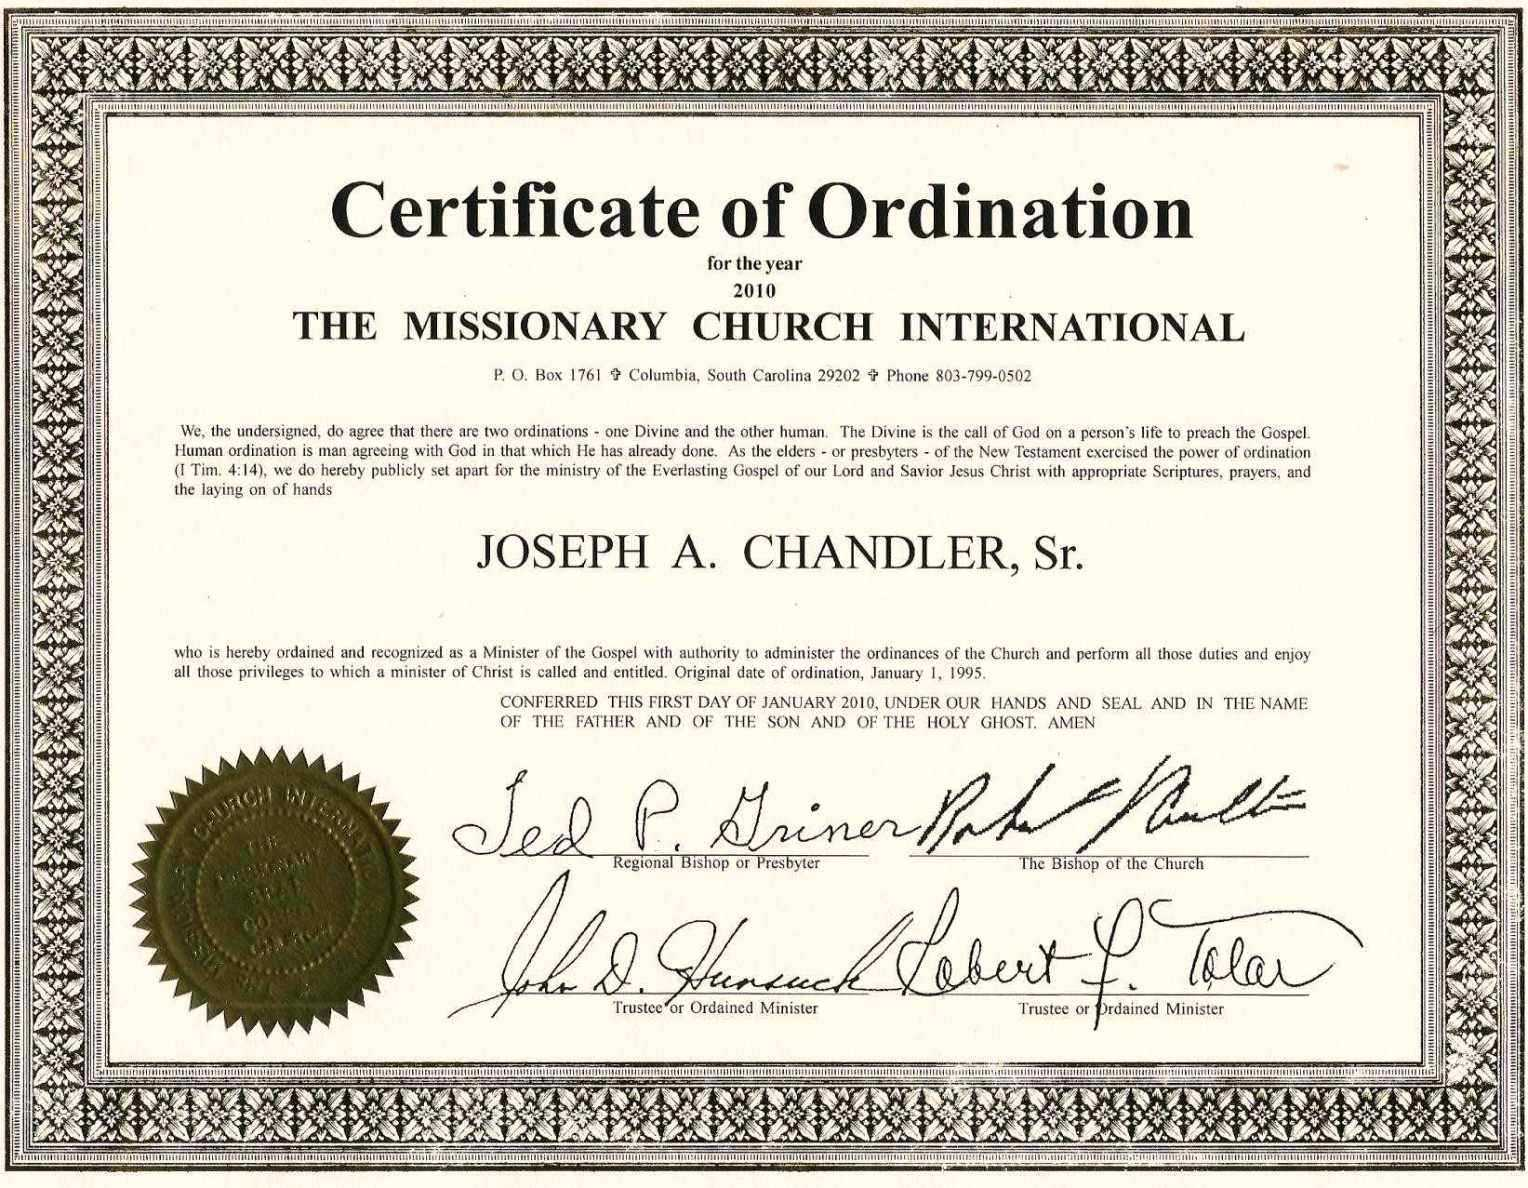 Exceptional Printable Ordination Certificate | Dan's Blog With Regard To Certificate Of Ordination Template